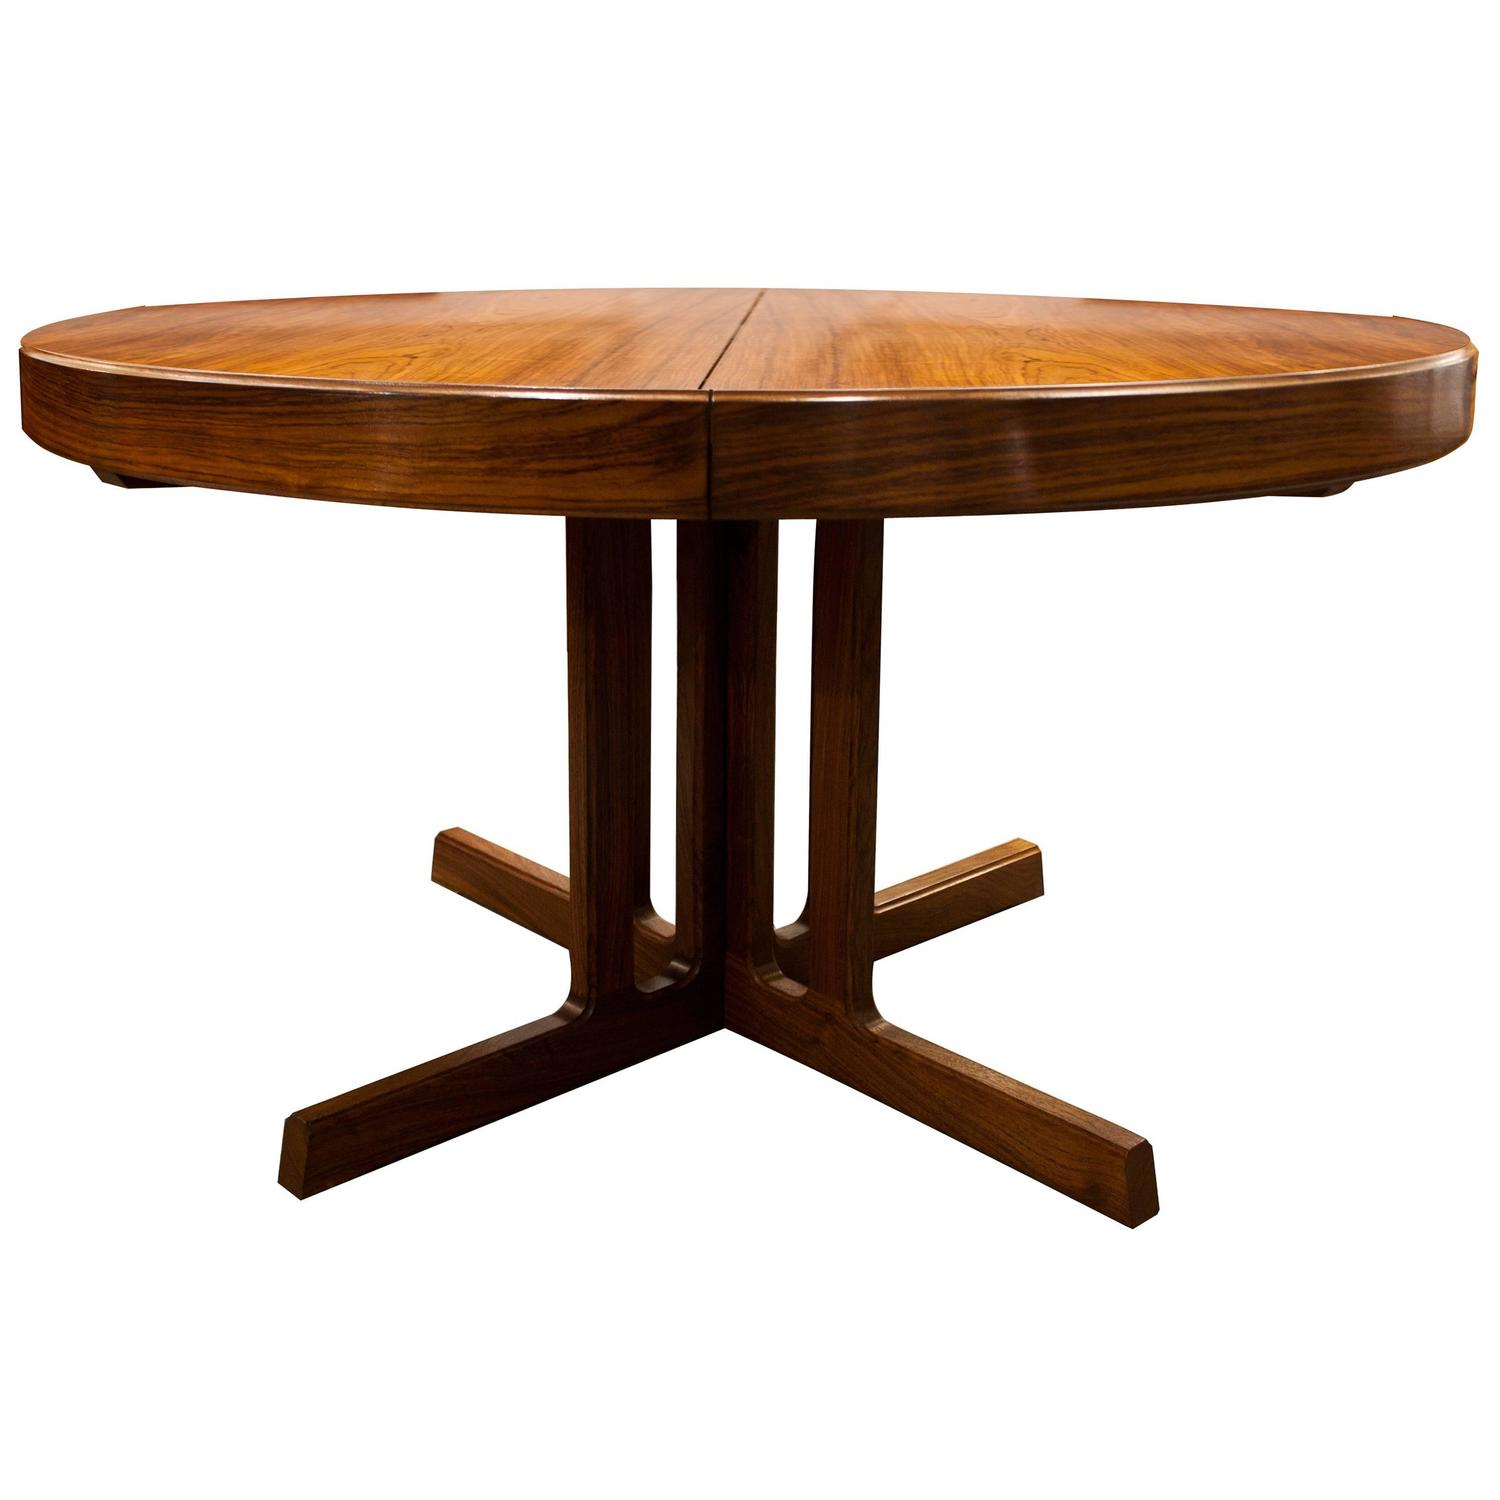 Mid century modern design rosewood dining table at 1stdibs - Modern design dining table ...